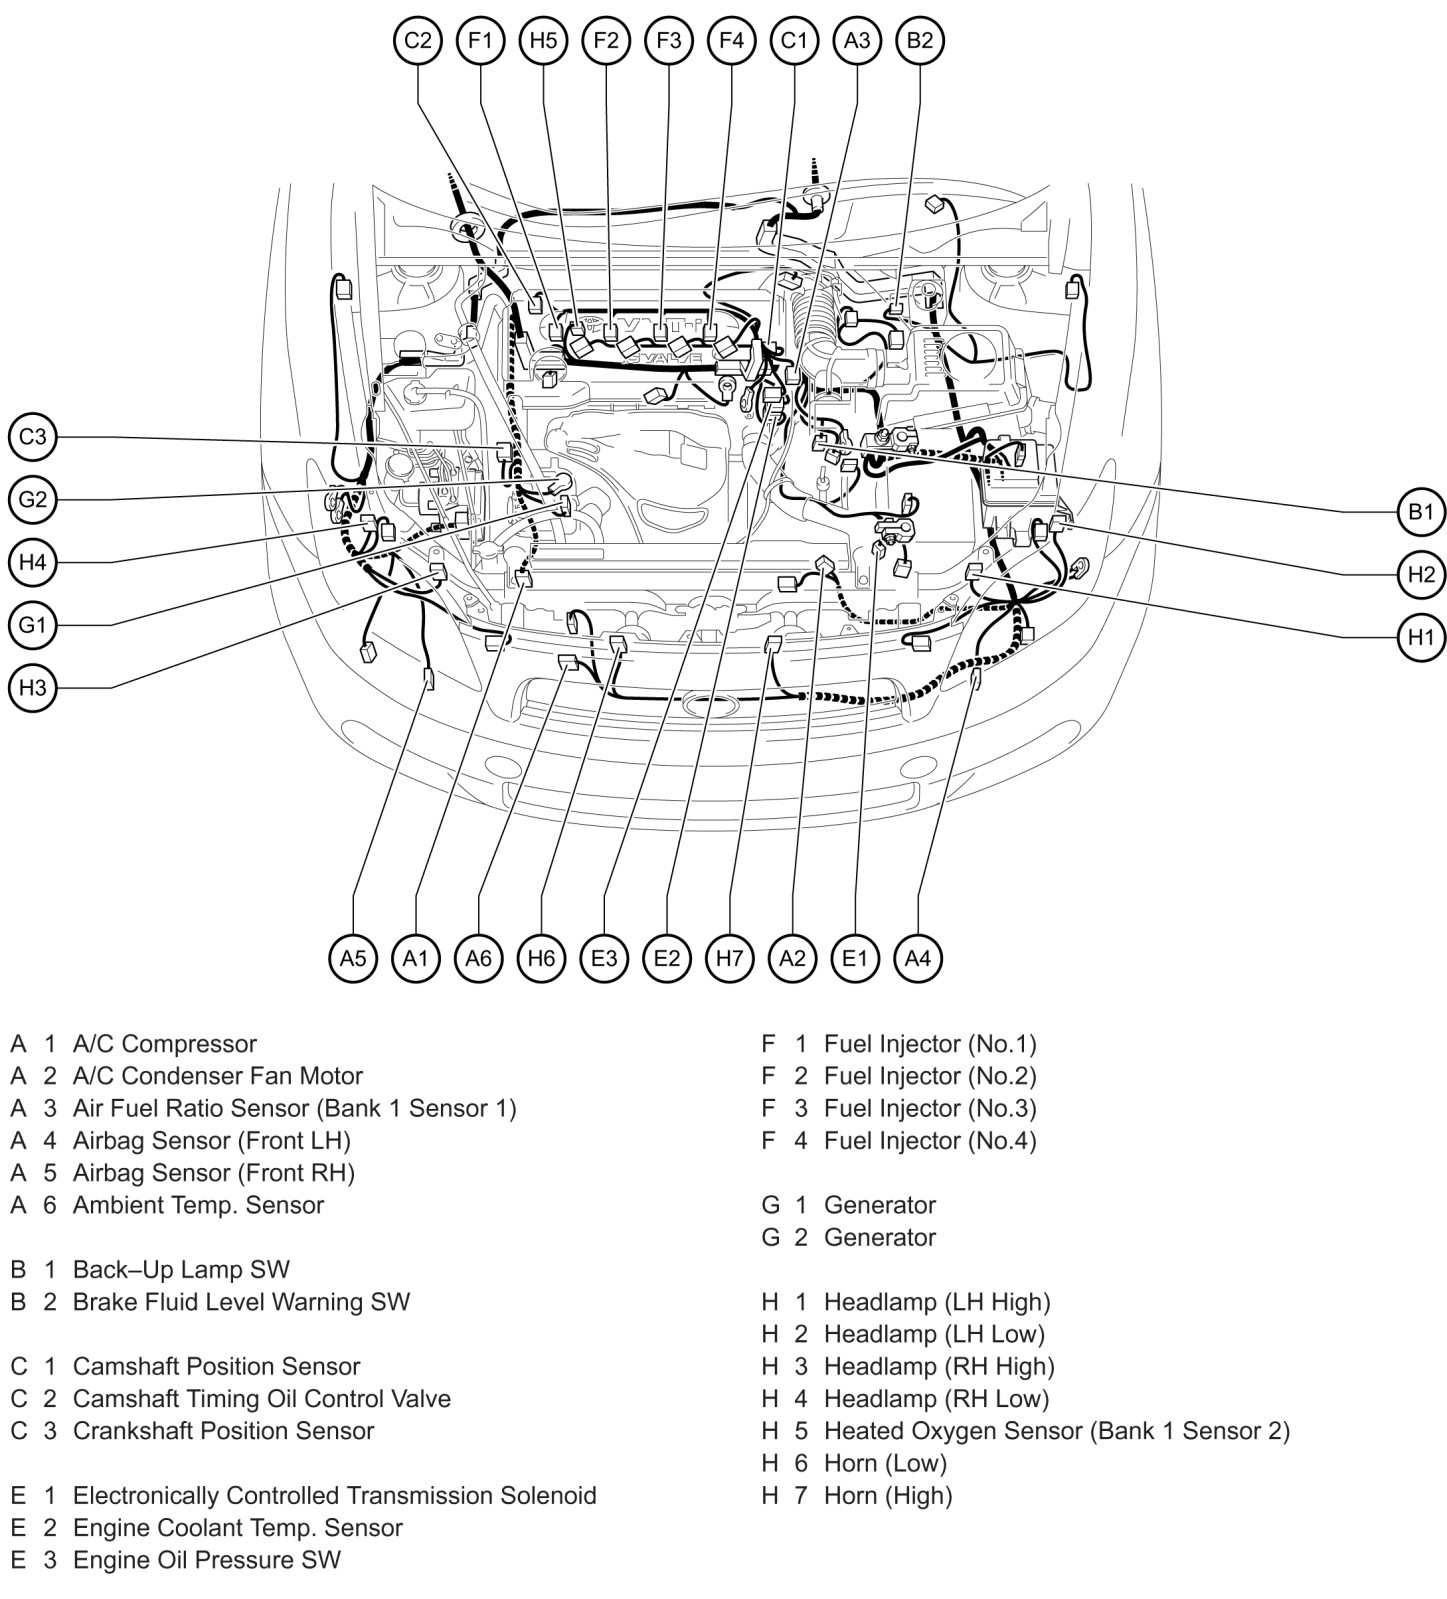 DIAGRAM] Scion Tc Radio Wiring Harness Diagram FULL Version HD Quality Harness  Diagram - WIKIDIAGRAMS.SIGGY2000.DEwikidiagrams.siggy2000.de